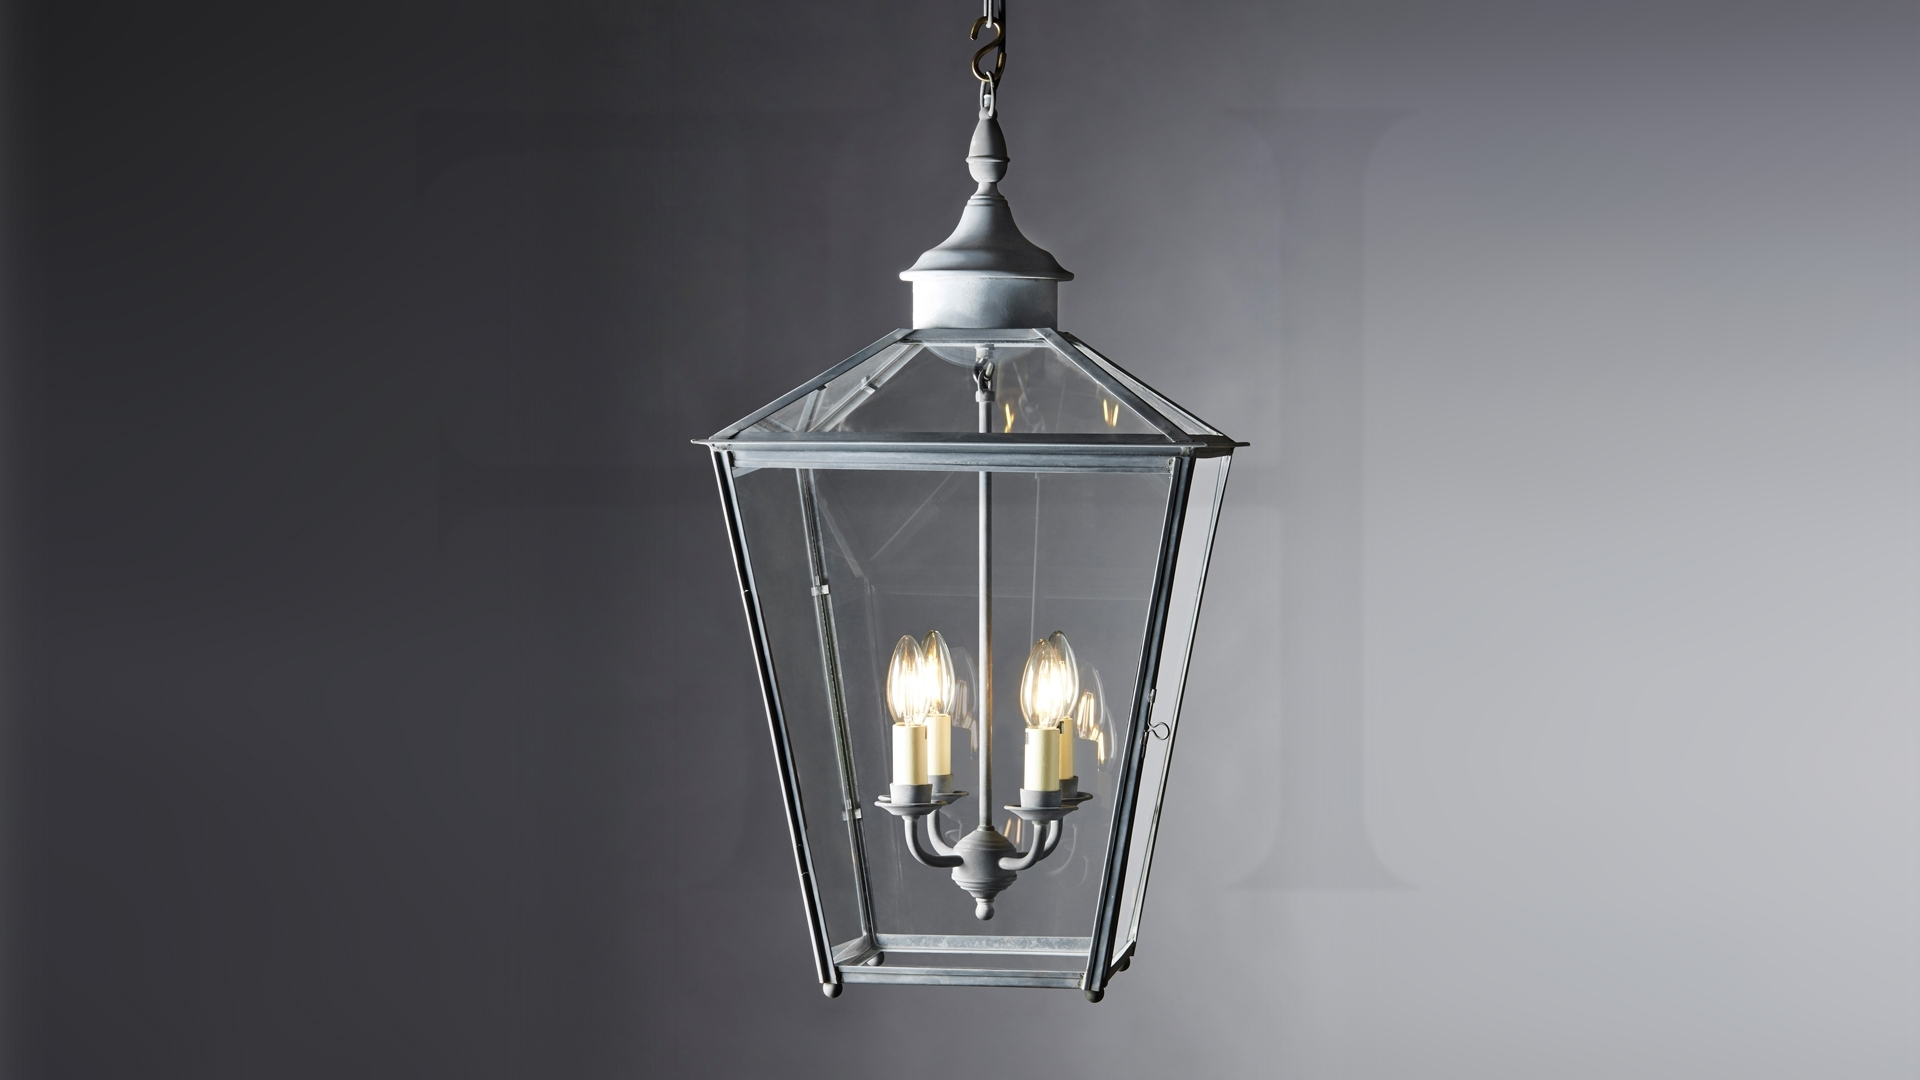 Well Known Buy Hanging Lanterns Online, Pendant Hanging Lights – Chelsea, South Inside Outdoor Hanging Lamps Online (View 19 of 20)